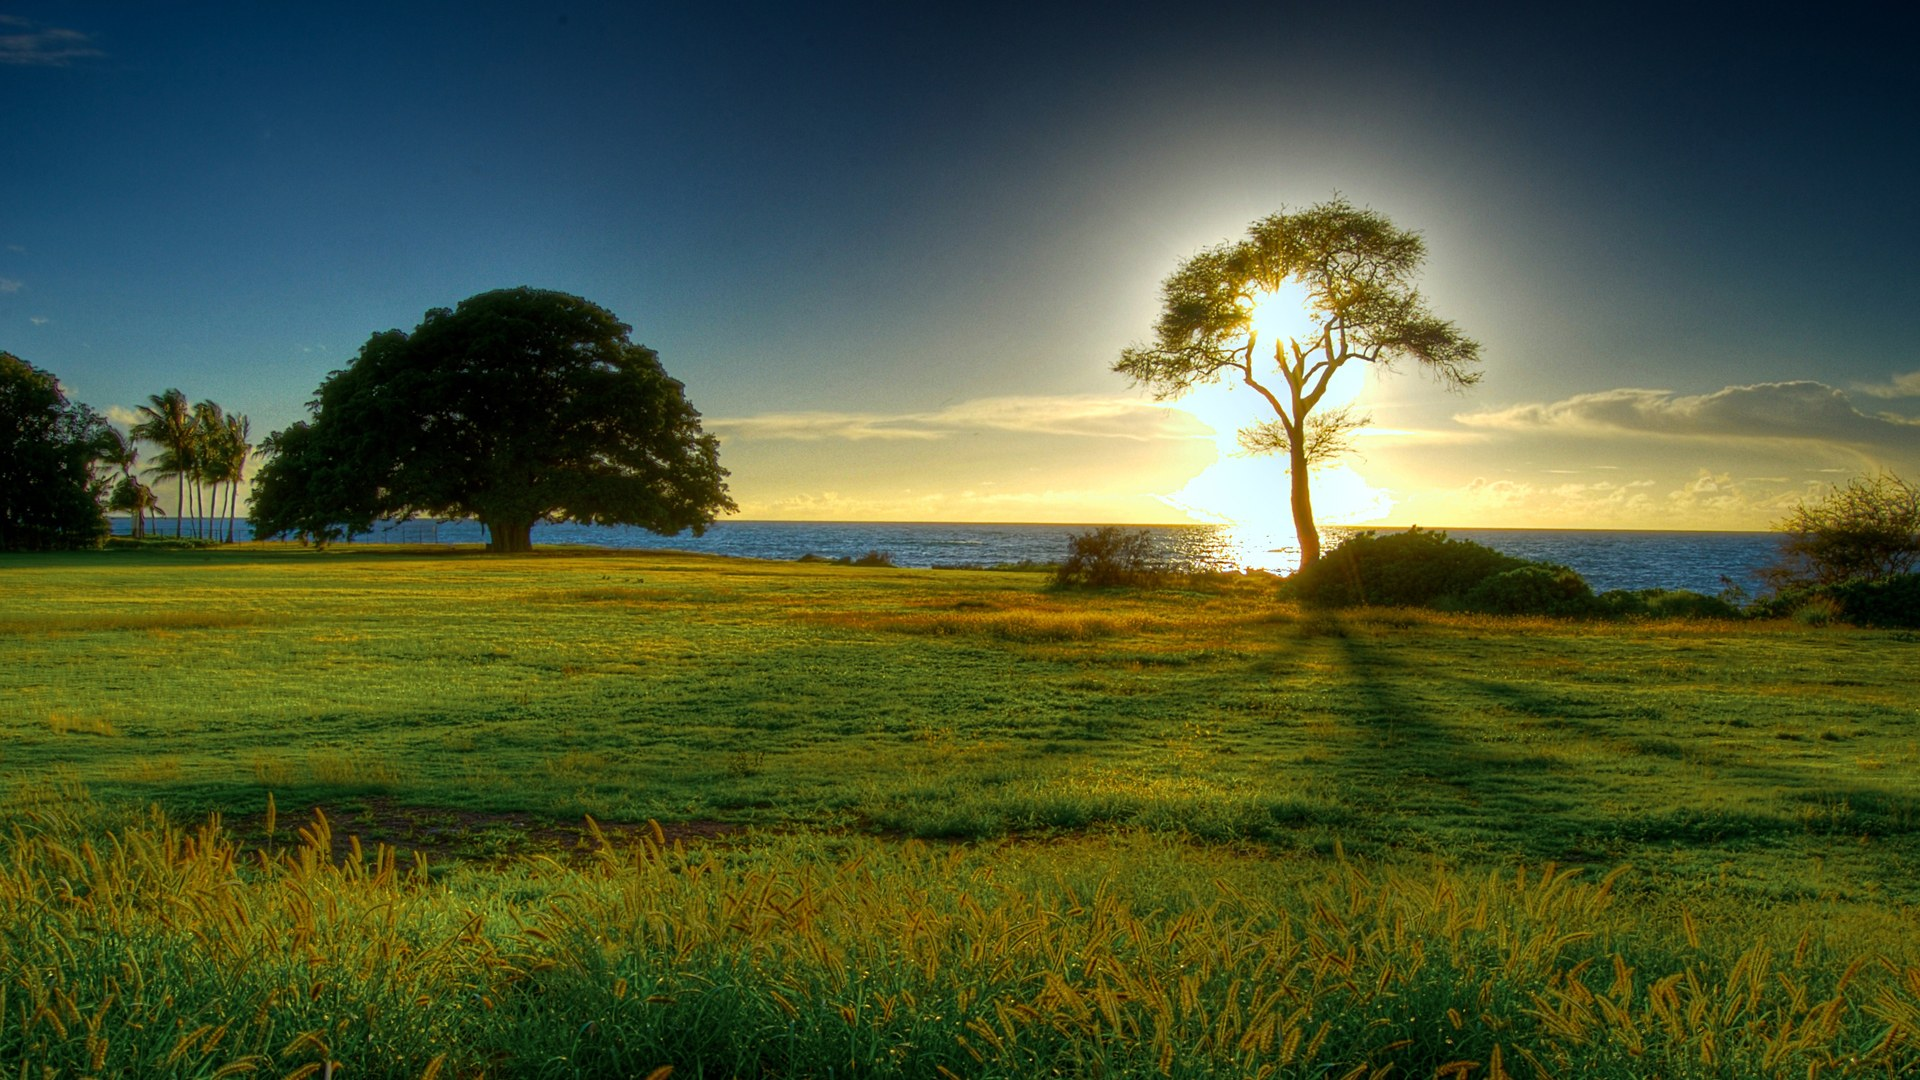 Beautiful Nature Wallpapers for Background HD Wallpaperjpg 1920x1080